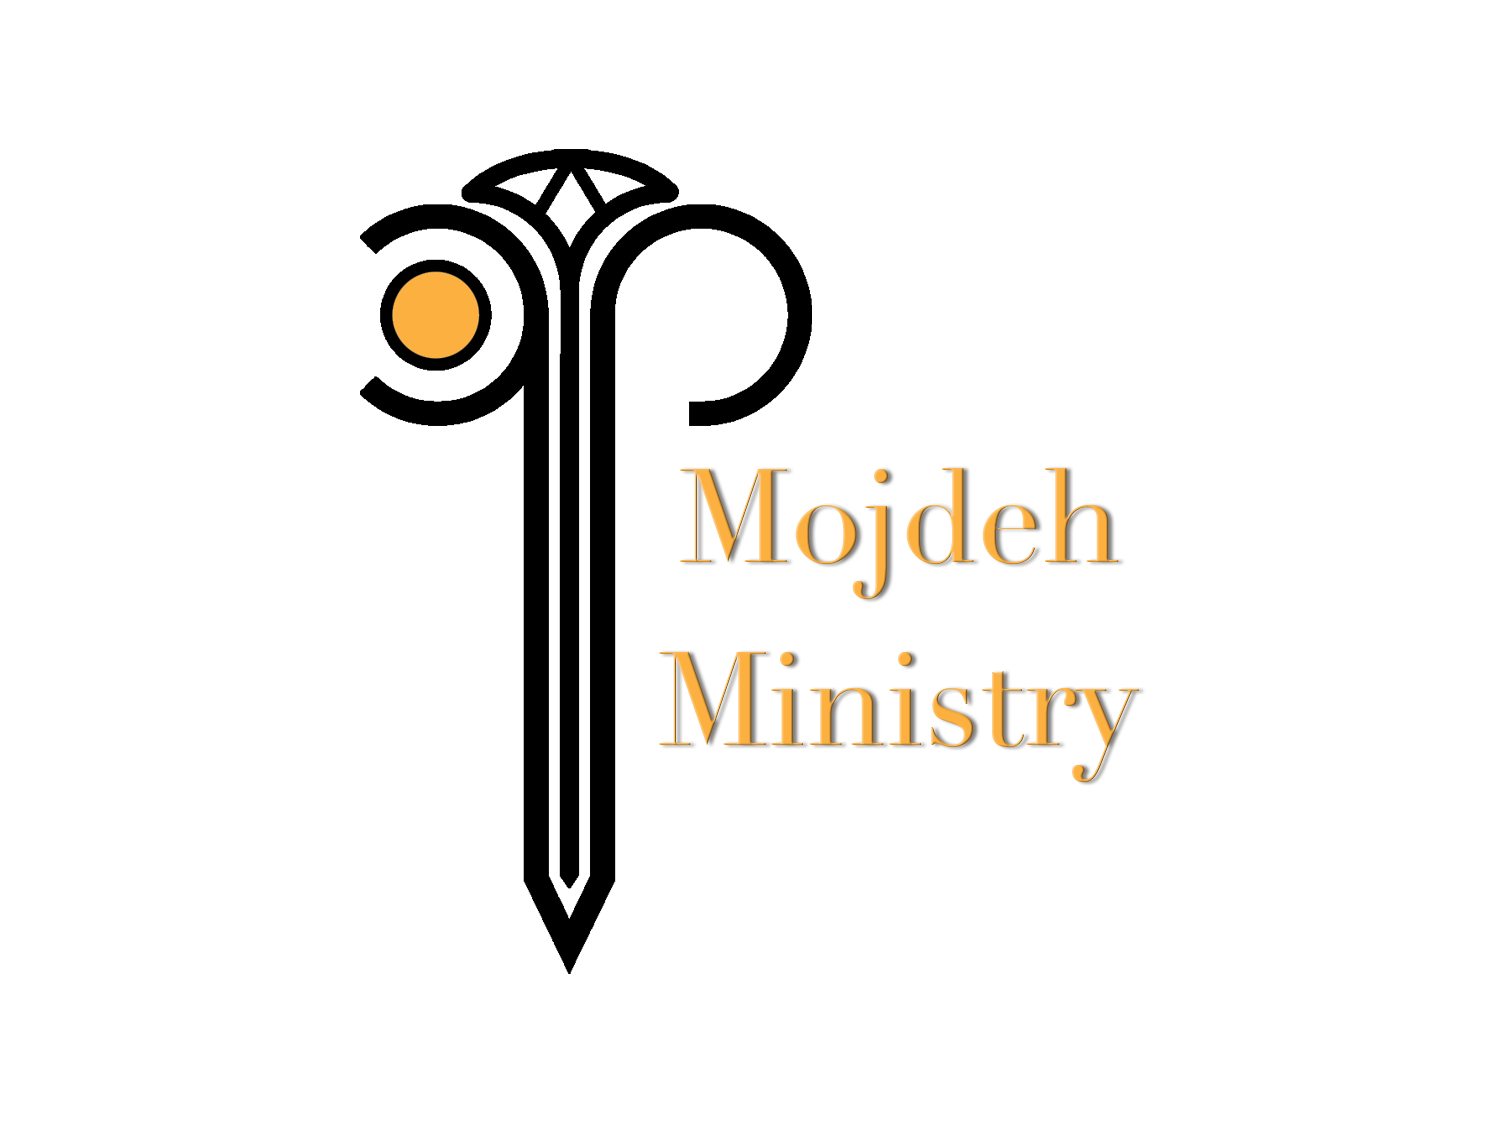 Mojdeh Ministry